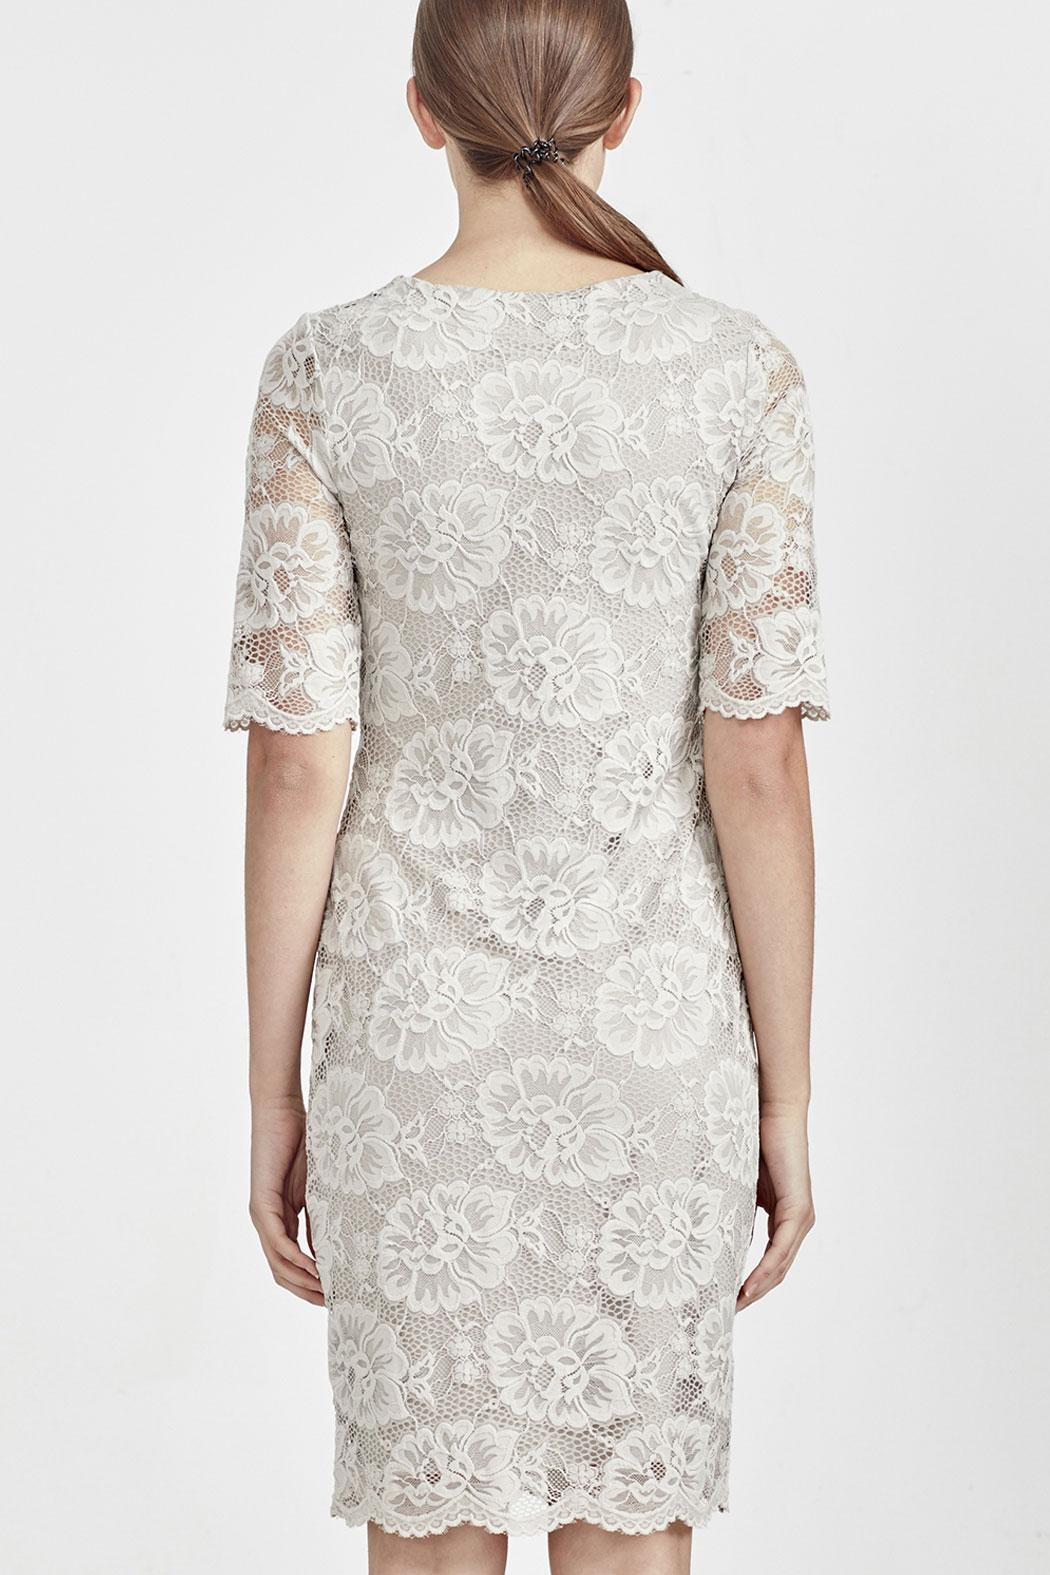 MACJAYS Stretch Lace Dress - Front Full Image